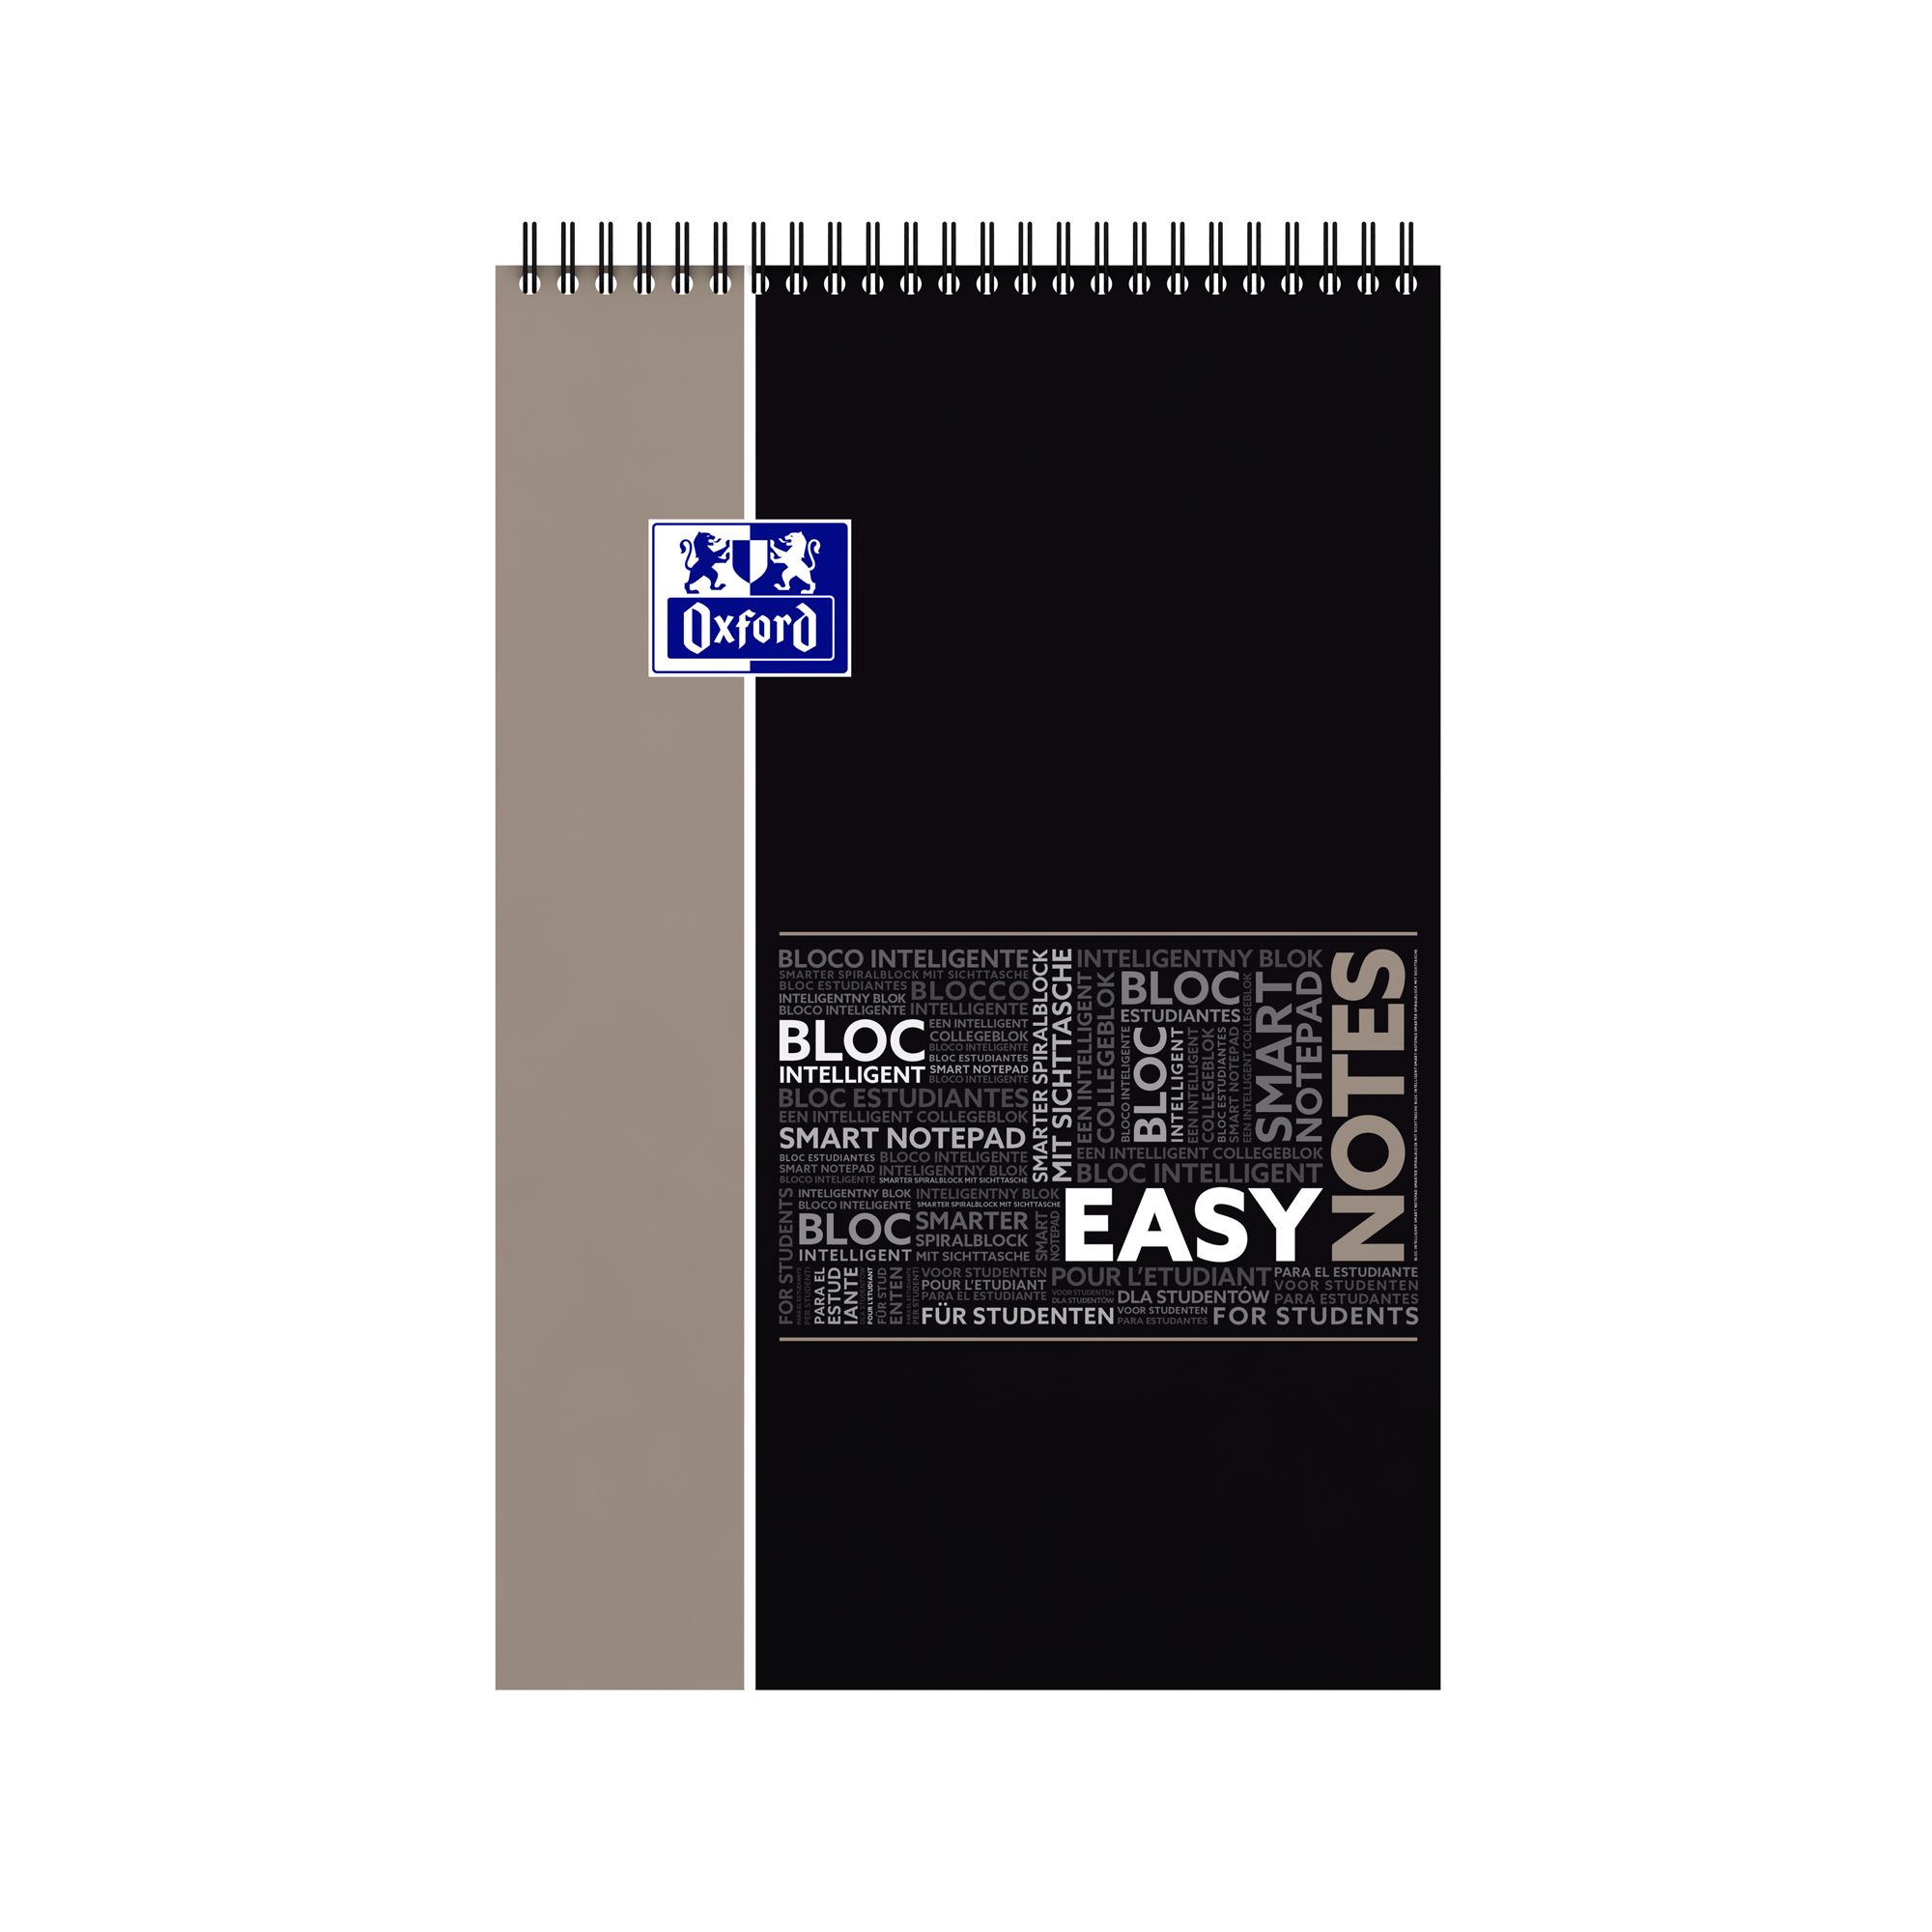 Oxford student easynotes